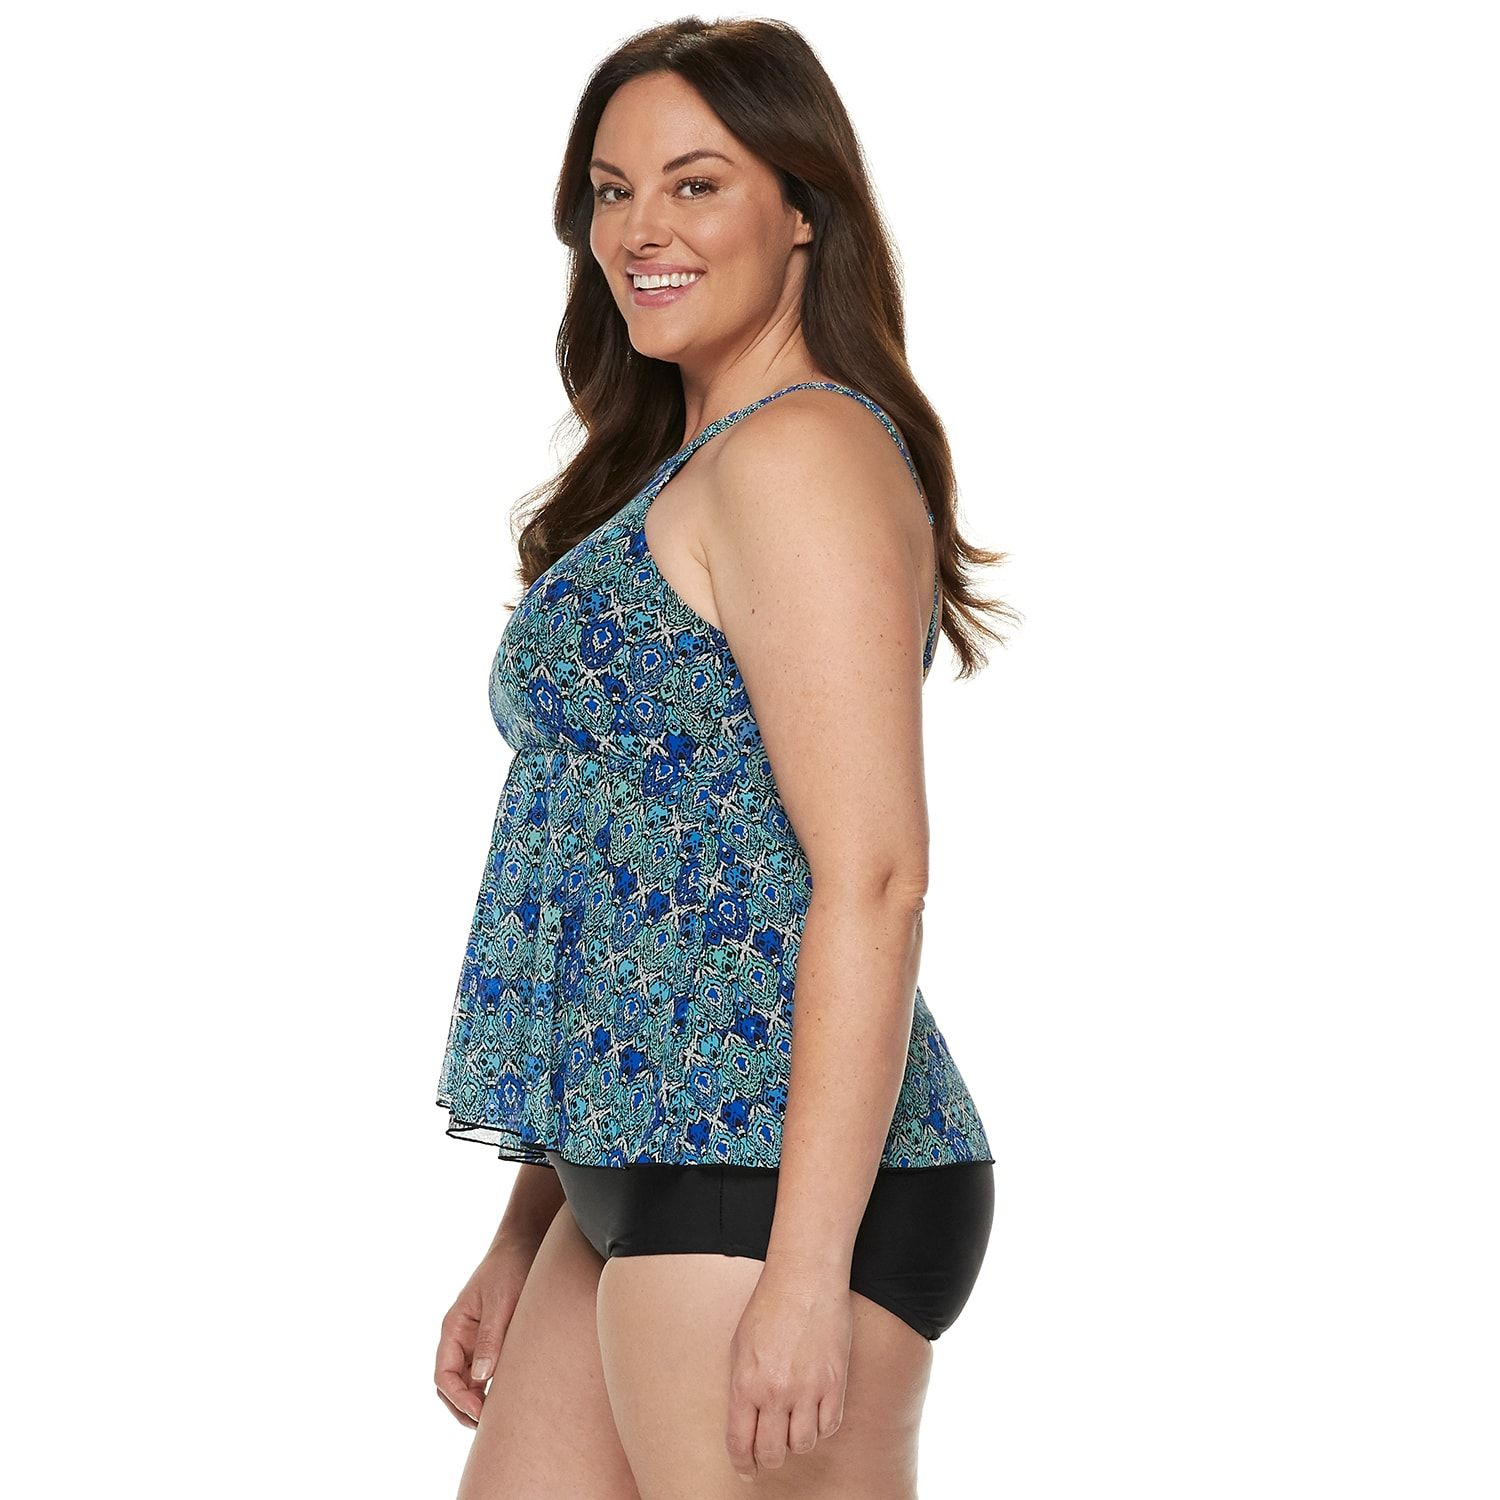 20a8fa7af9 Plus Size A Shore Fit Tummy Slimmer High-Neck Tankini Top  Fit ...